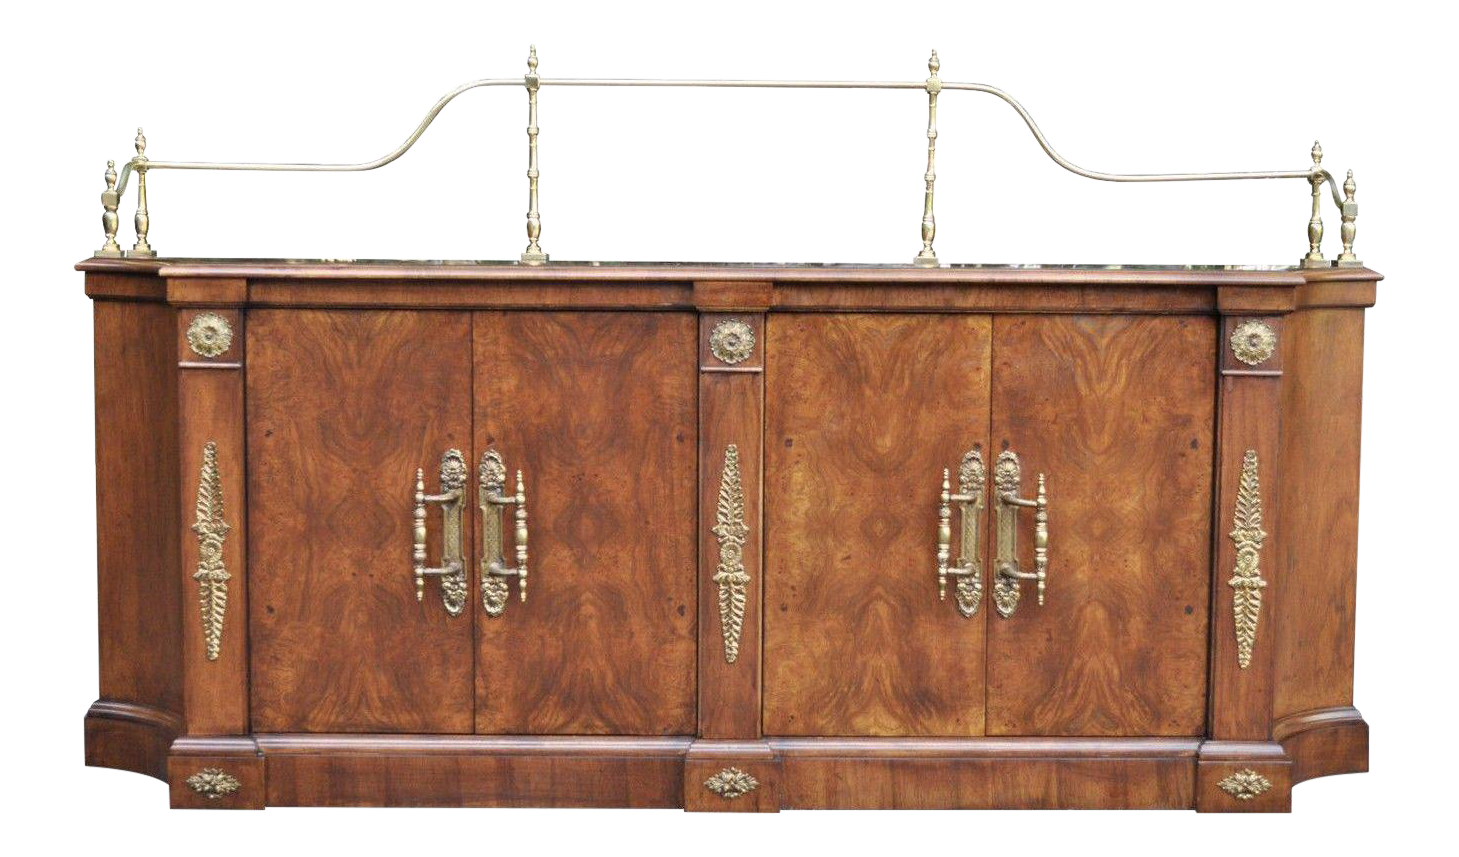 Vintage Century French Empire Neoclassical Burl Wood Credenza Sideboard  Cabinet | Chairish